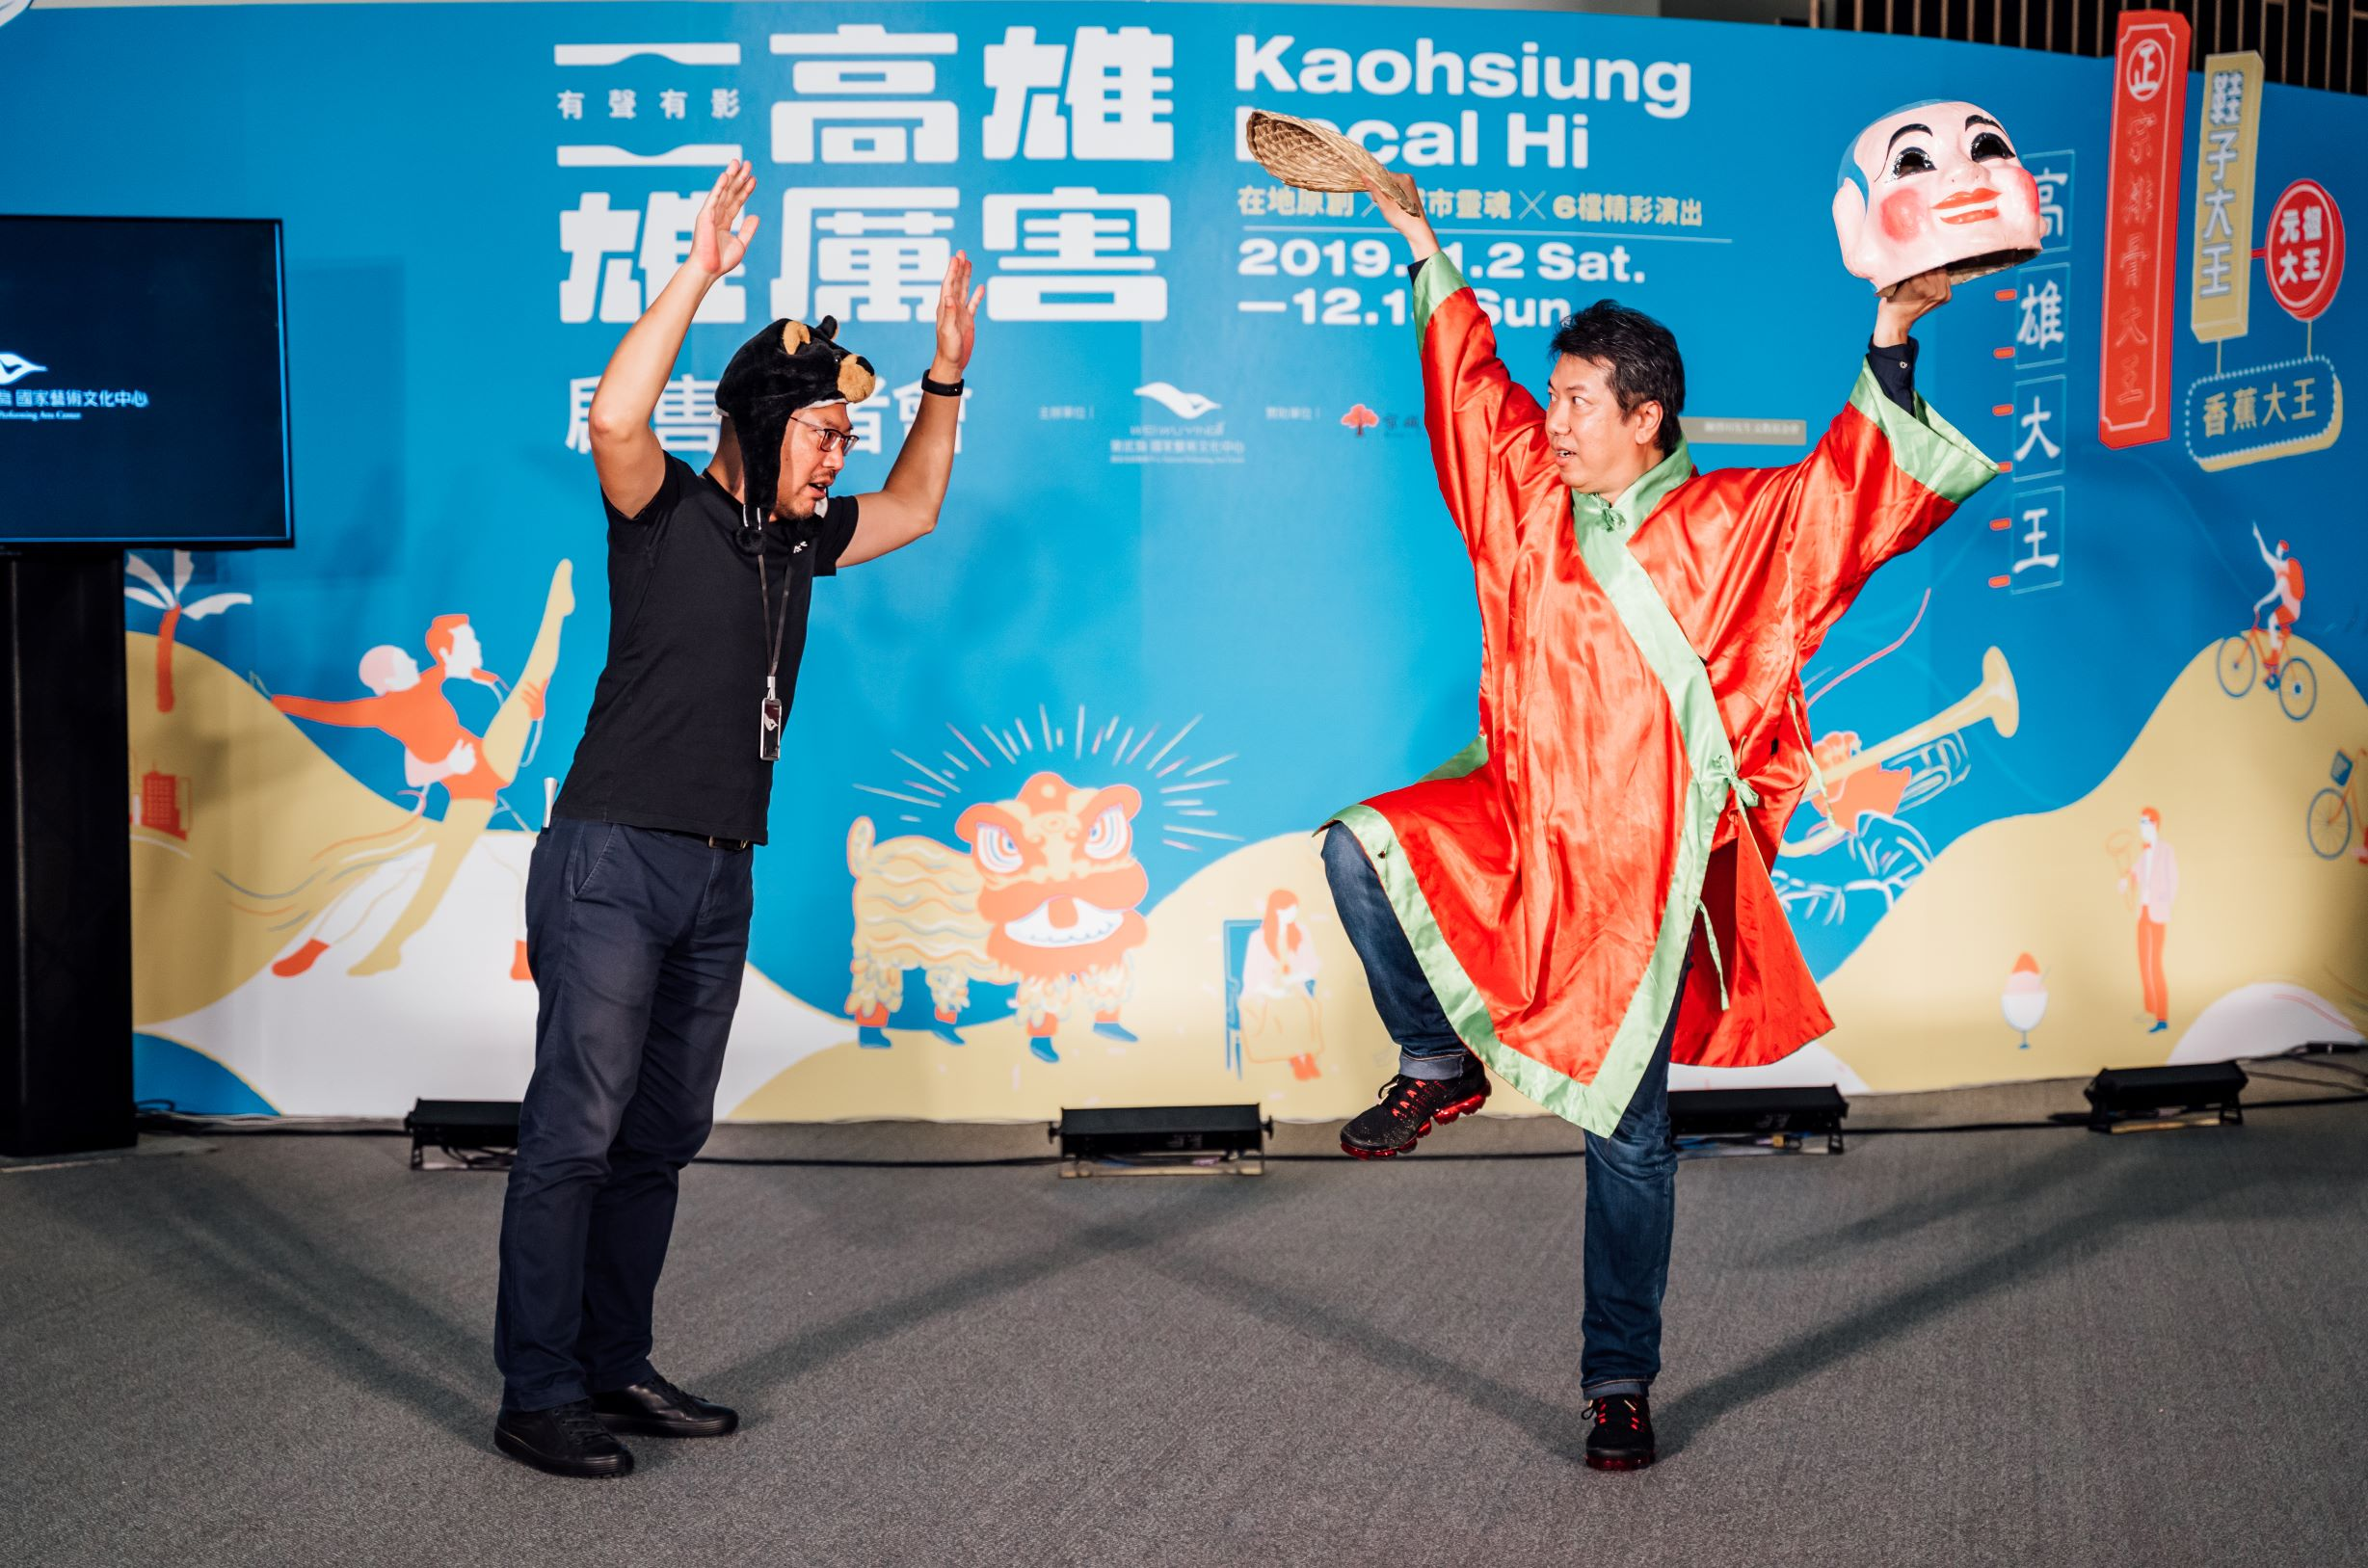 """Photo:CHIEN Wen-Pin, Artistic and General Director, points out, """"being a center for all, we are definitely a global brand rooted in our local talents, 'glocal' if you may. Kaohsiung is a wow city with rich culture and history."""